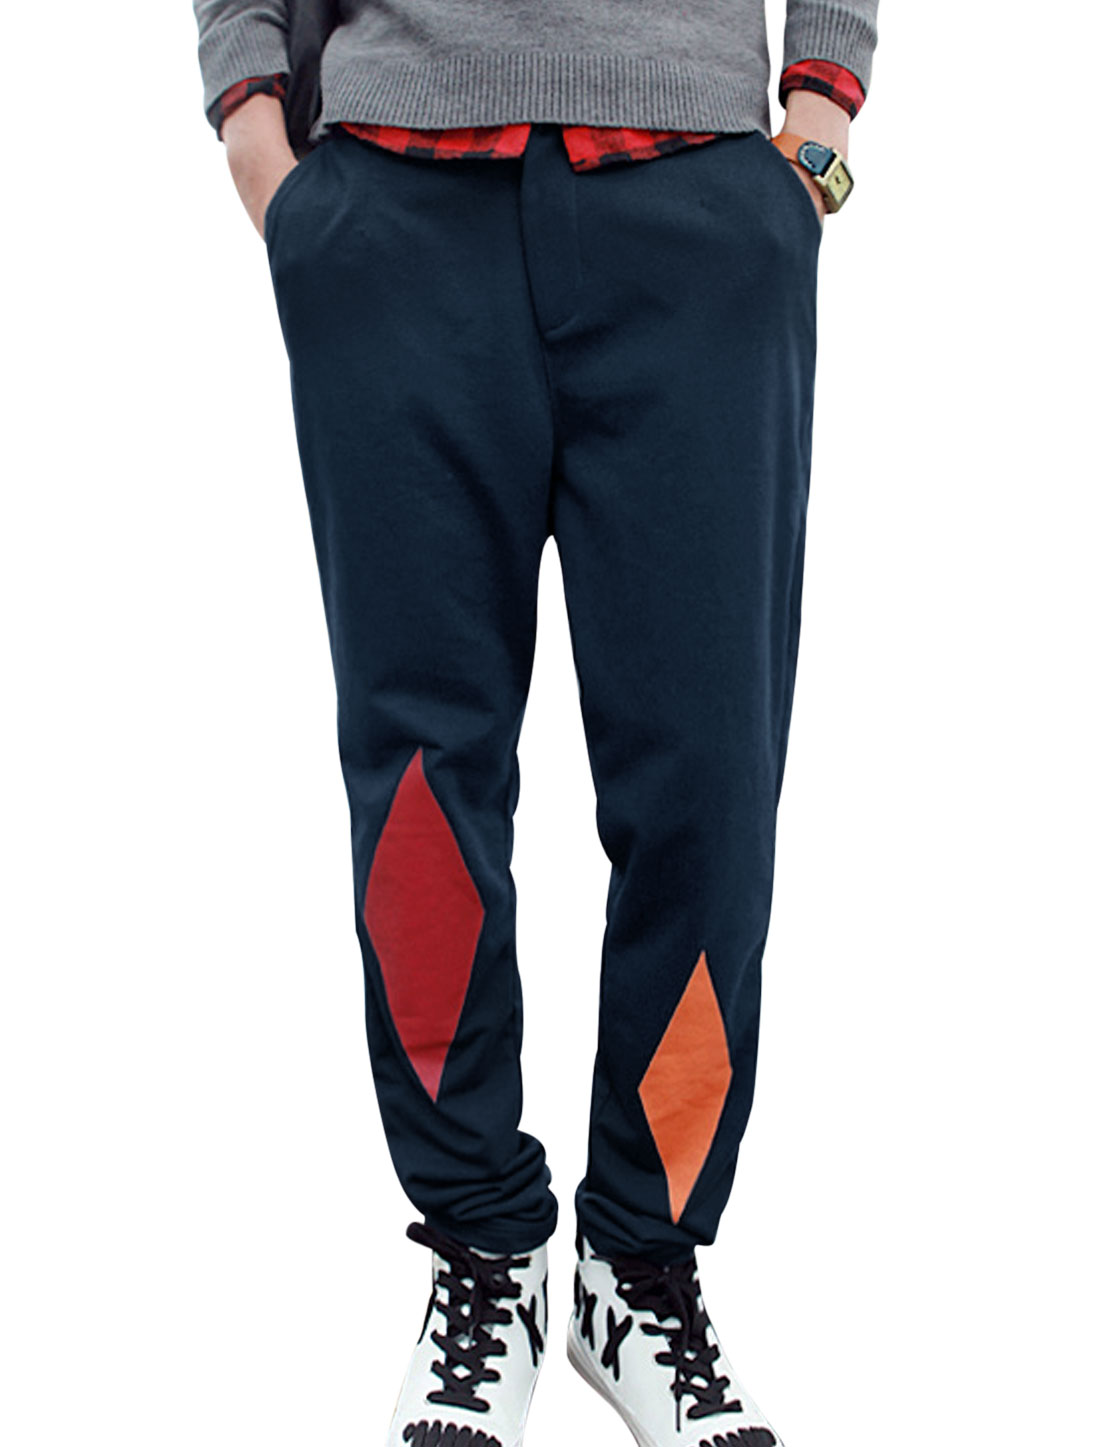 Men Contrast Color Slant Pockets Hip Pockets Sports Pants Navy Blue W34